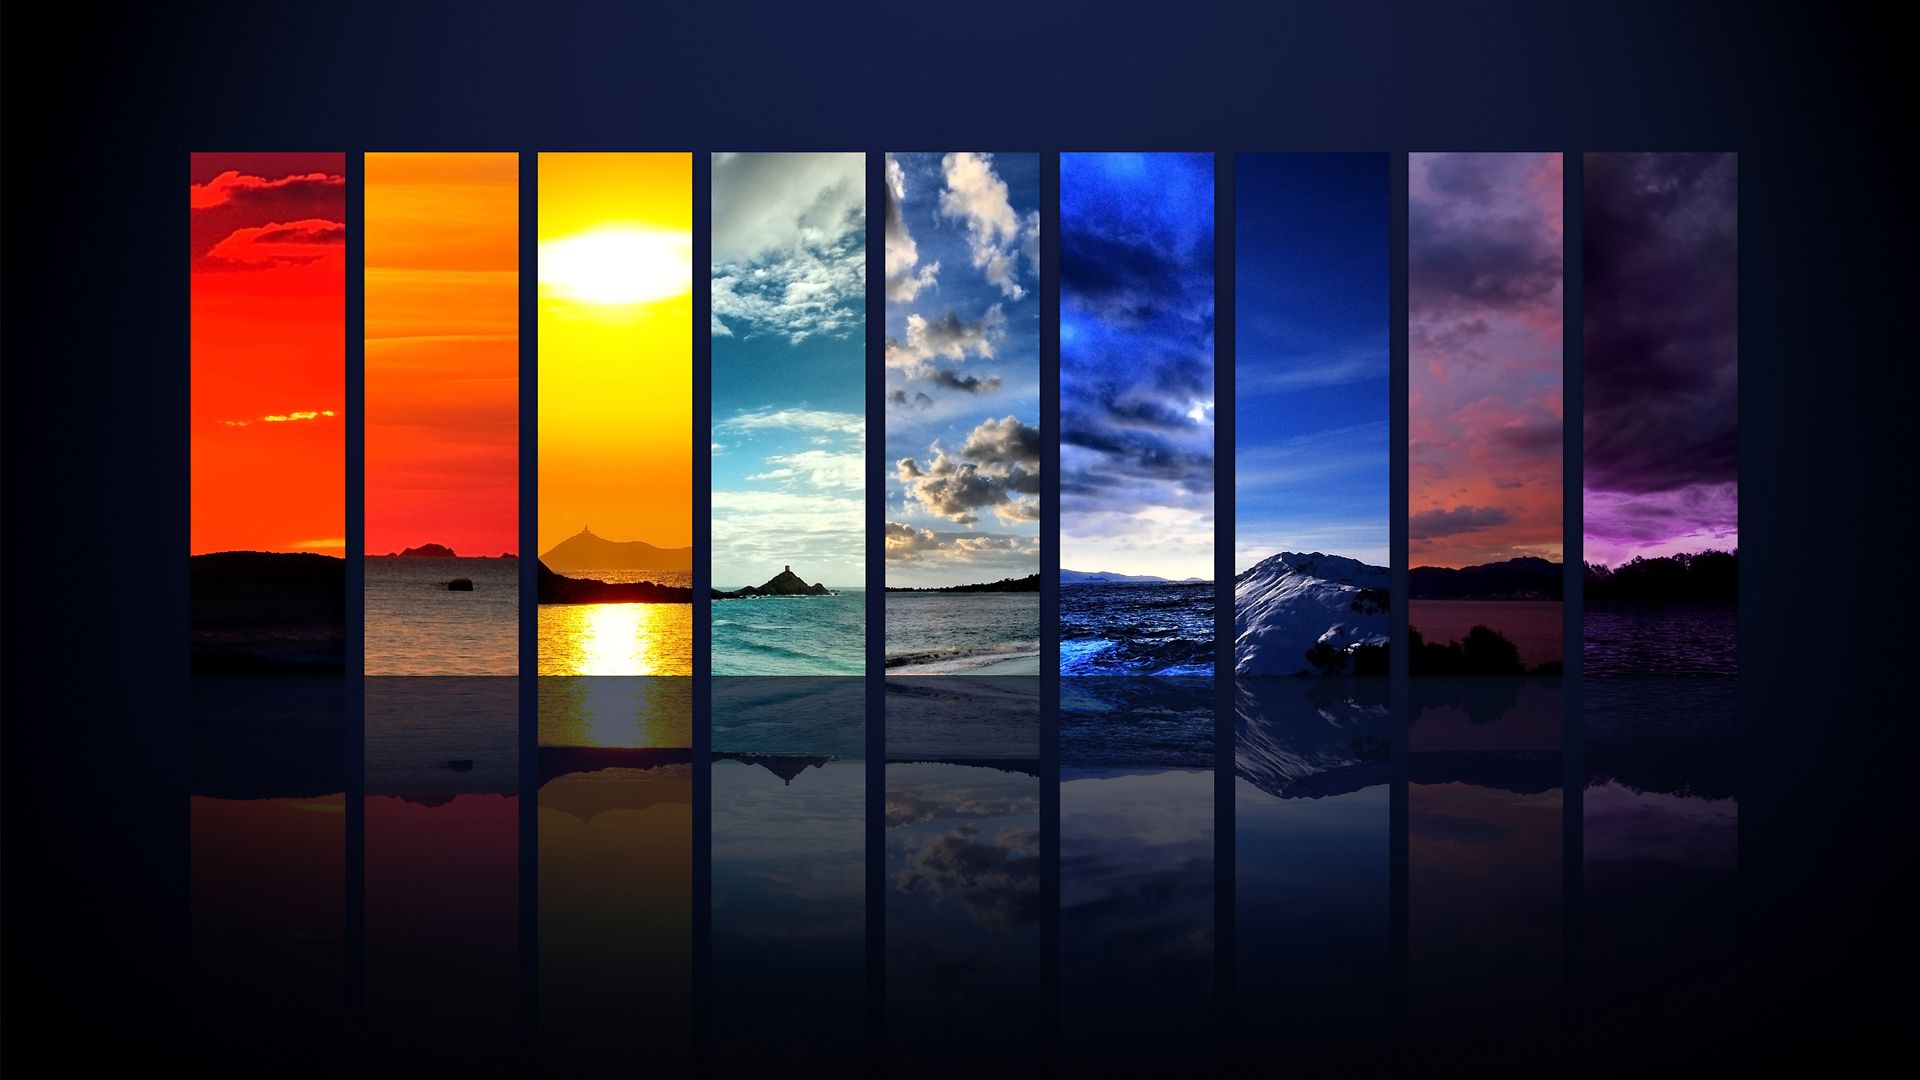 Water Views On A Color Spectrum Cool Desktop Backgrounds Background Hd Wallpaper Desktop Background Pictures